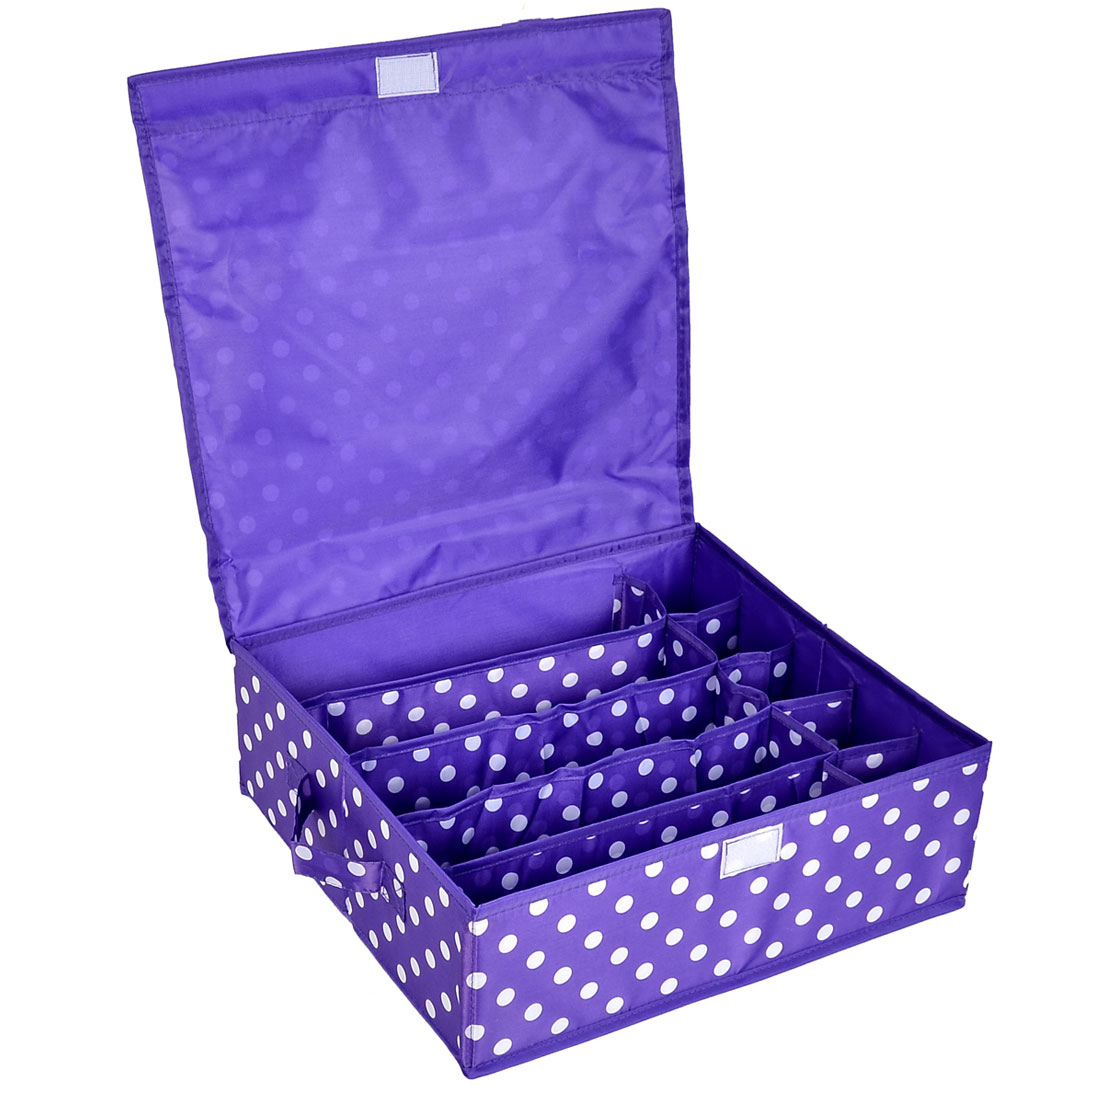 Household Dots Pattern 10 Compartments Storage Bag Packing Case Purple